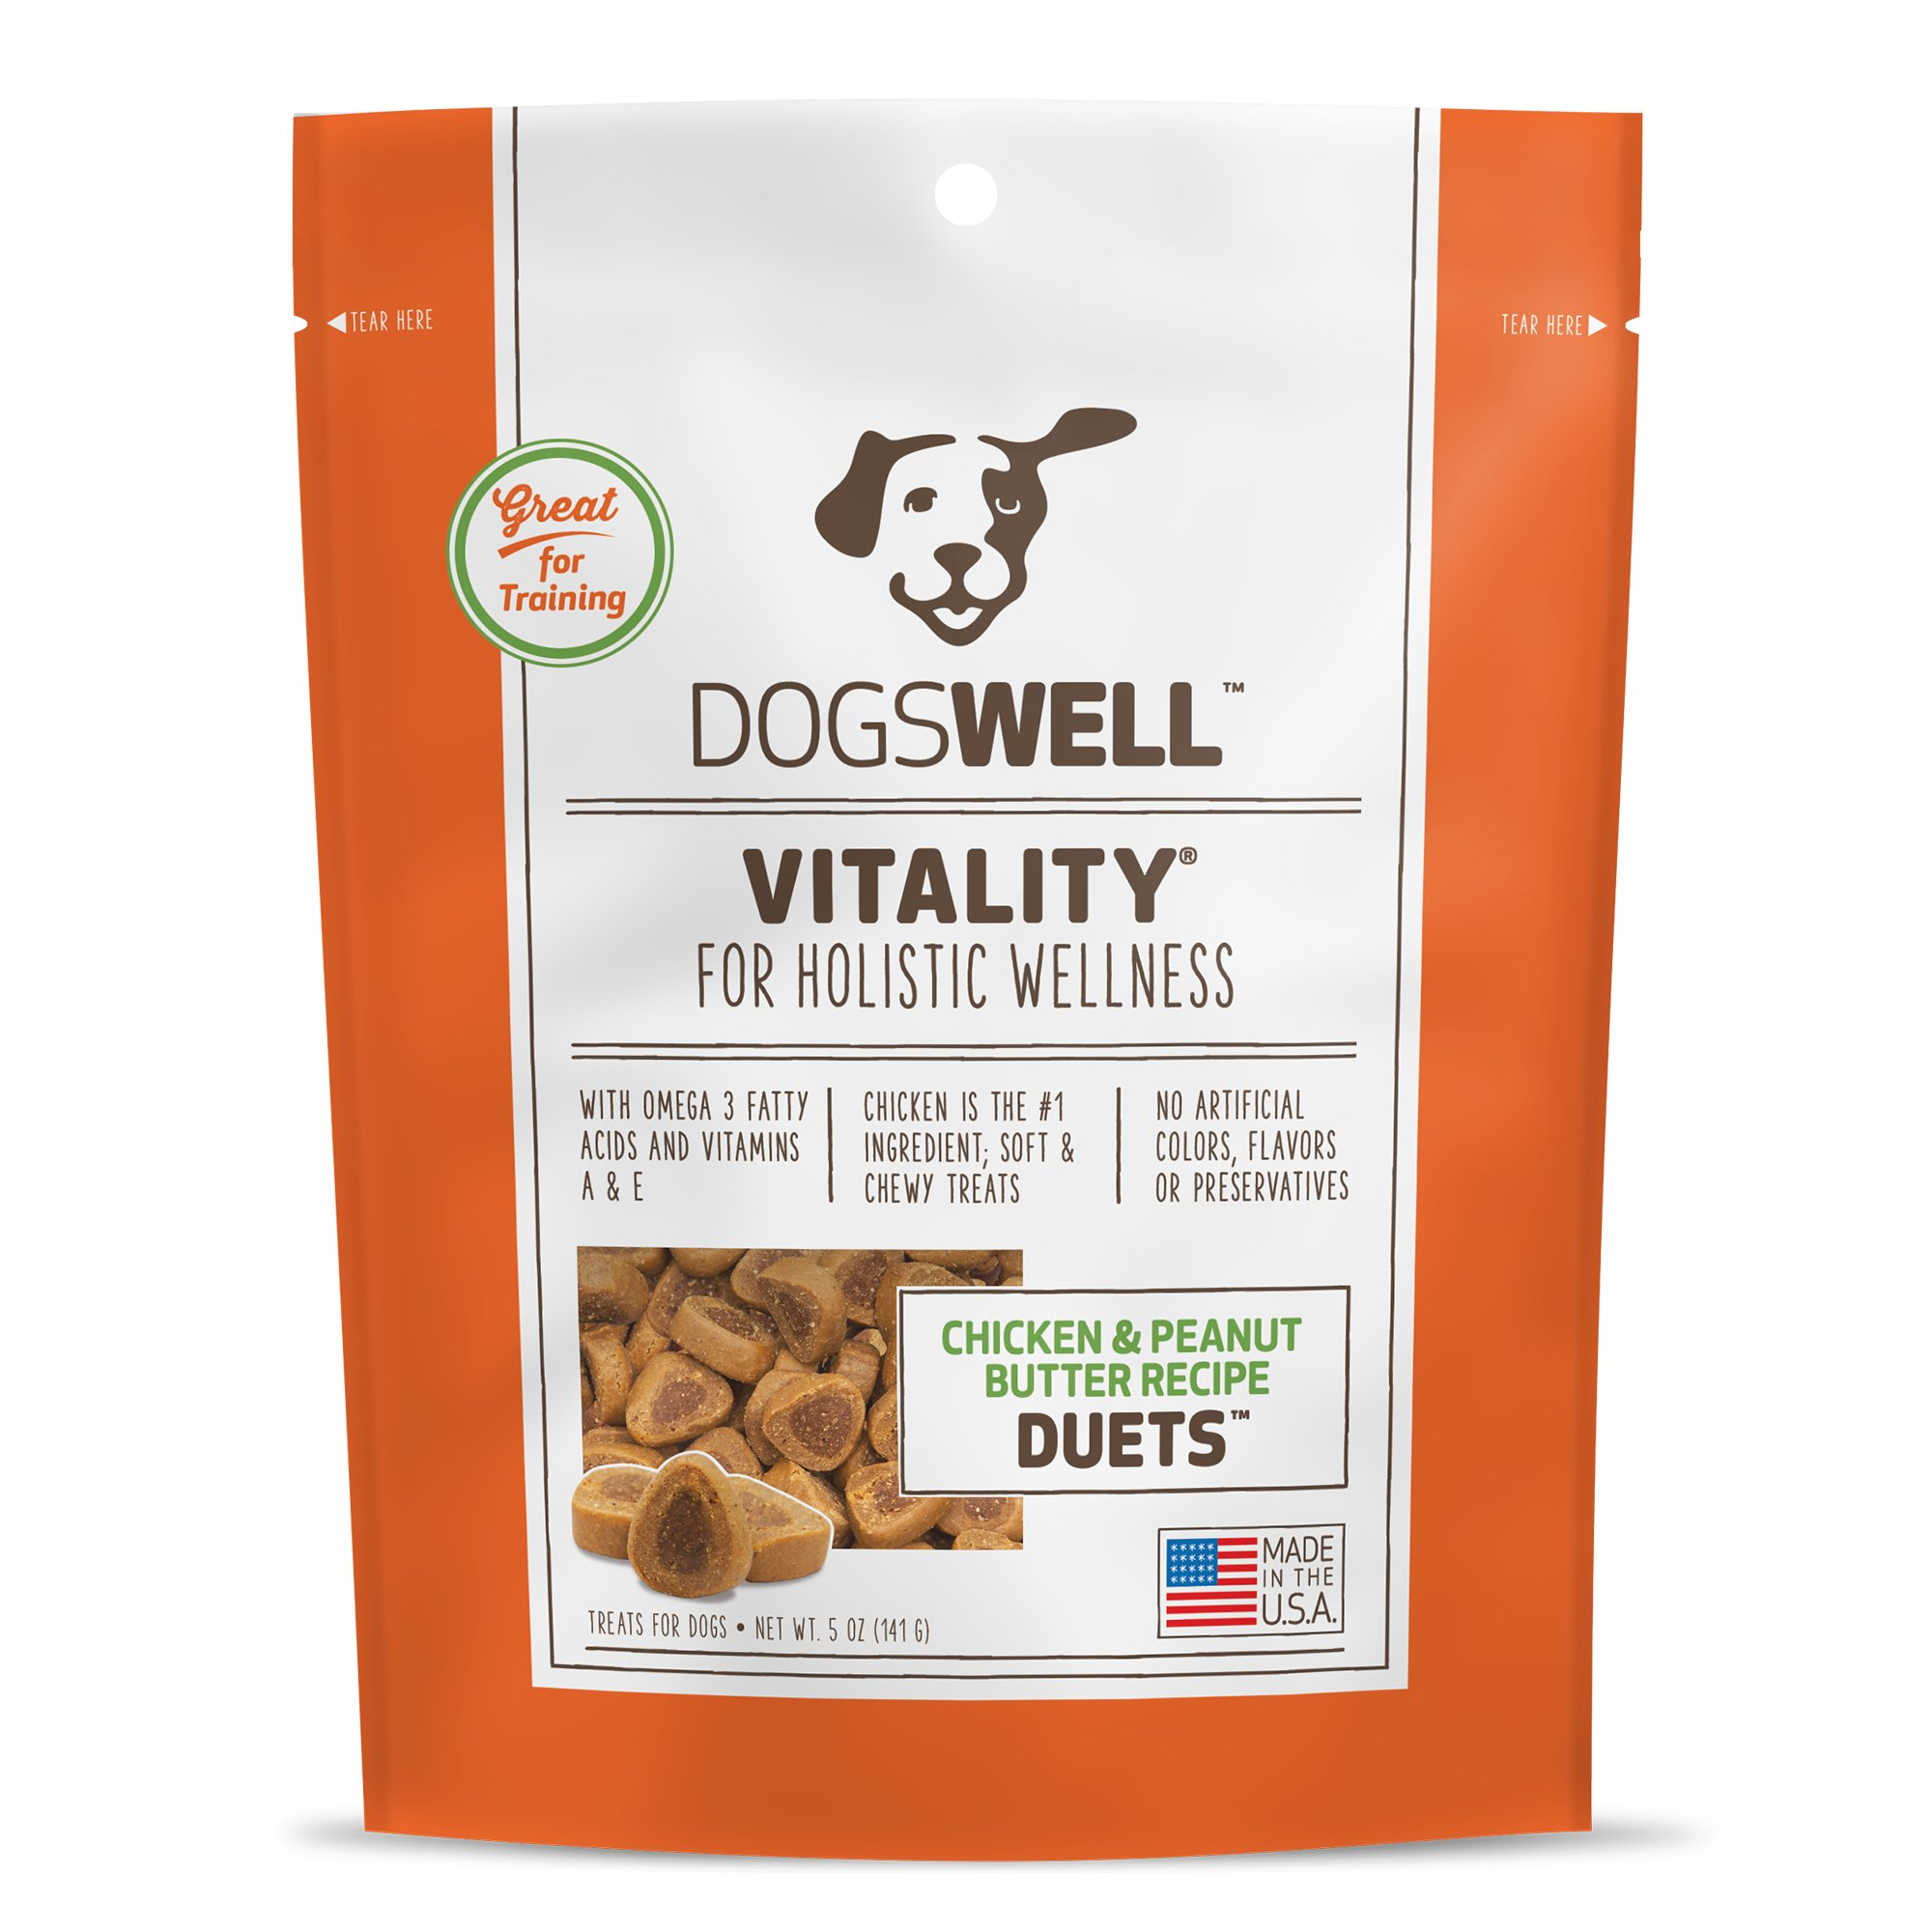 Dogswell Vitality Chicken and Peanut Butter Duets Dog Treats